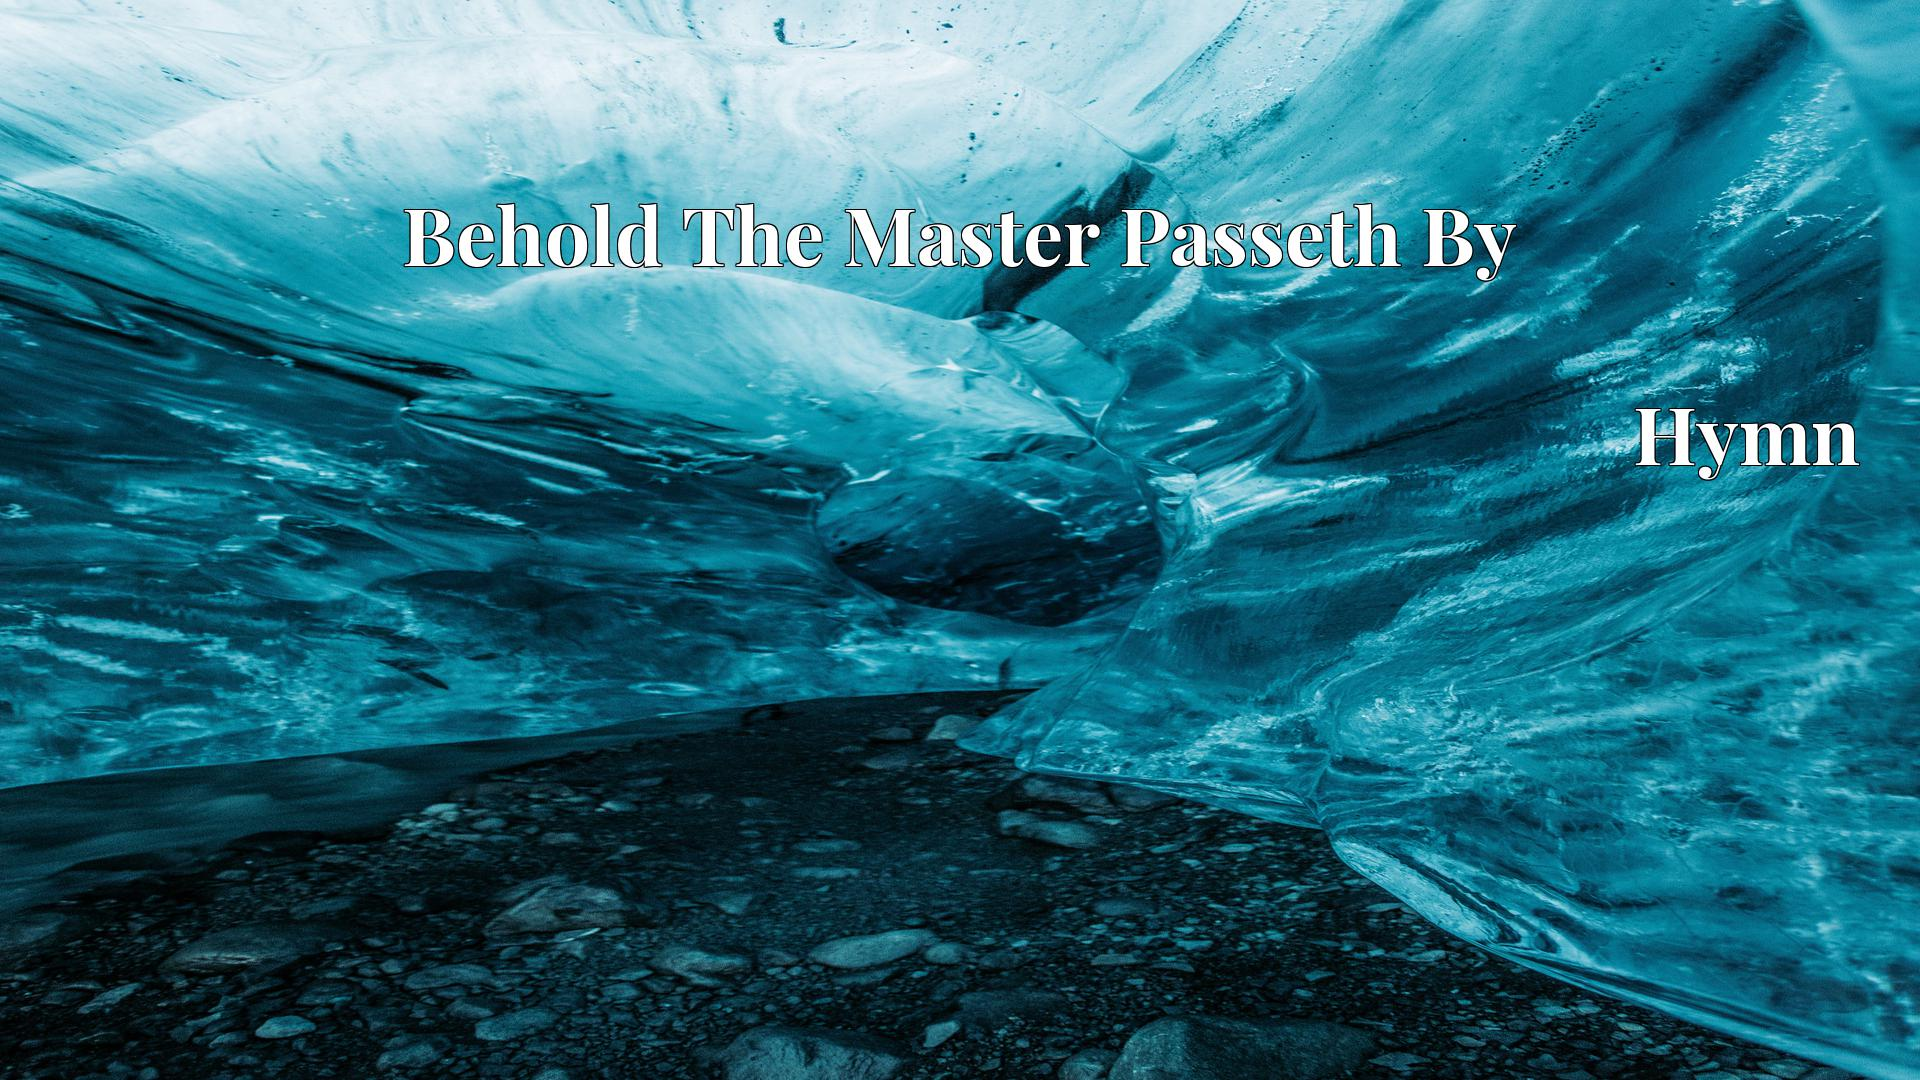 Behold The Master Passeth By Hymn